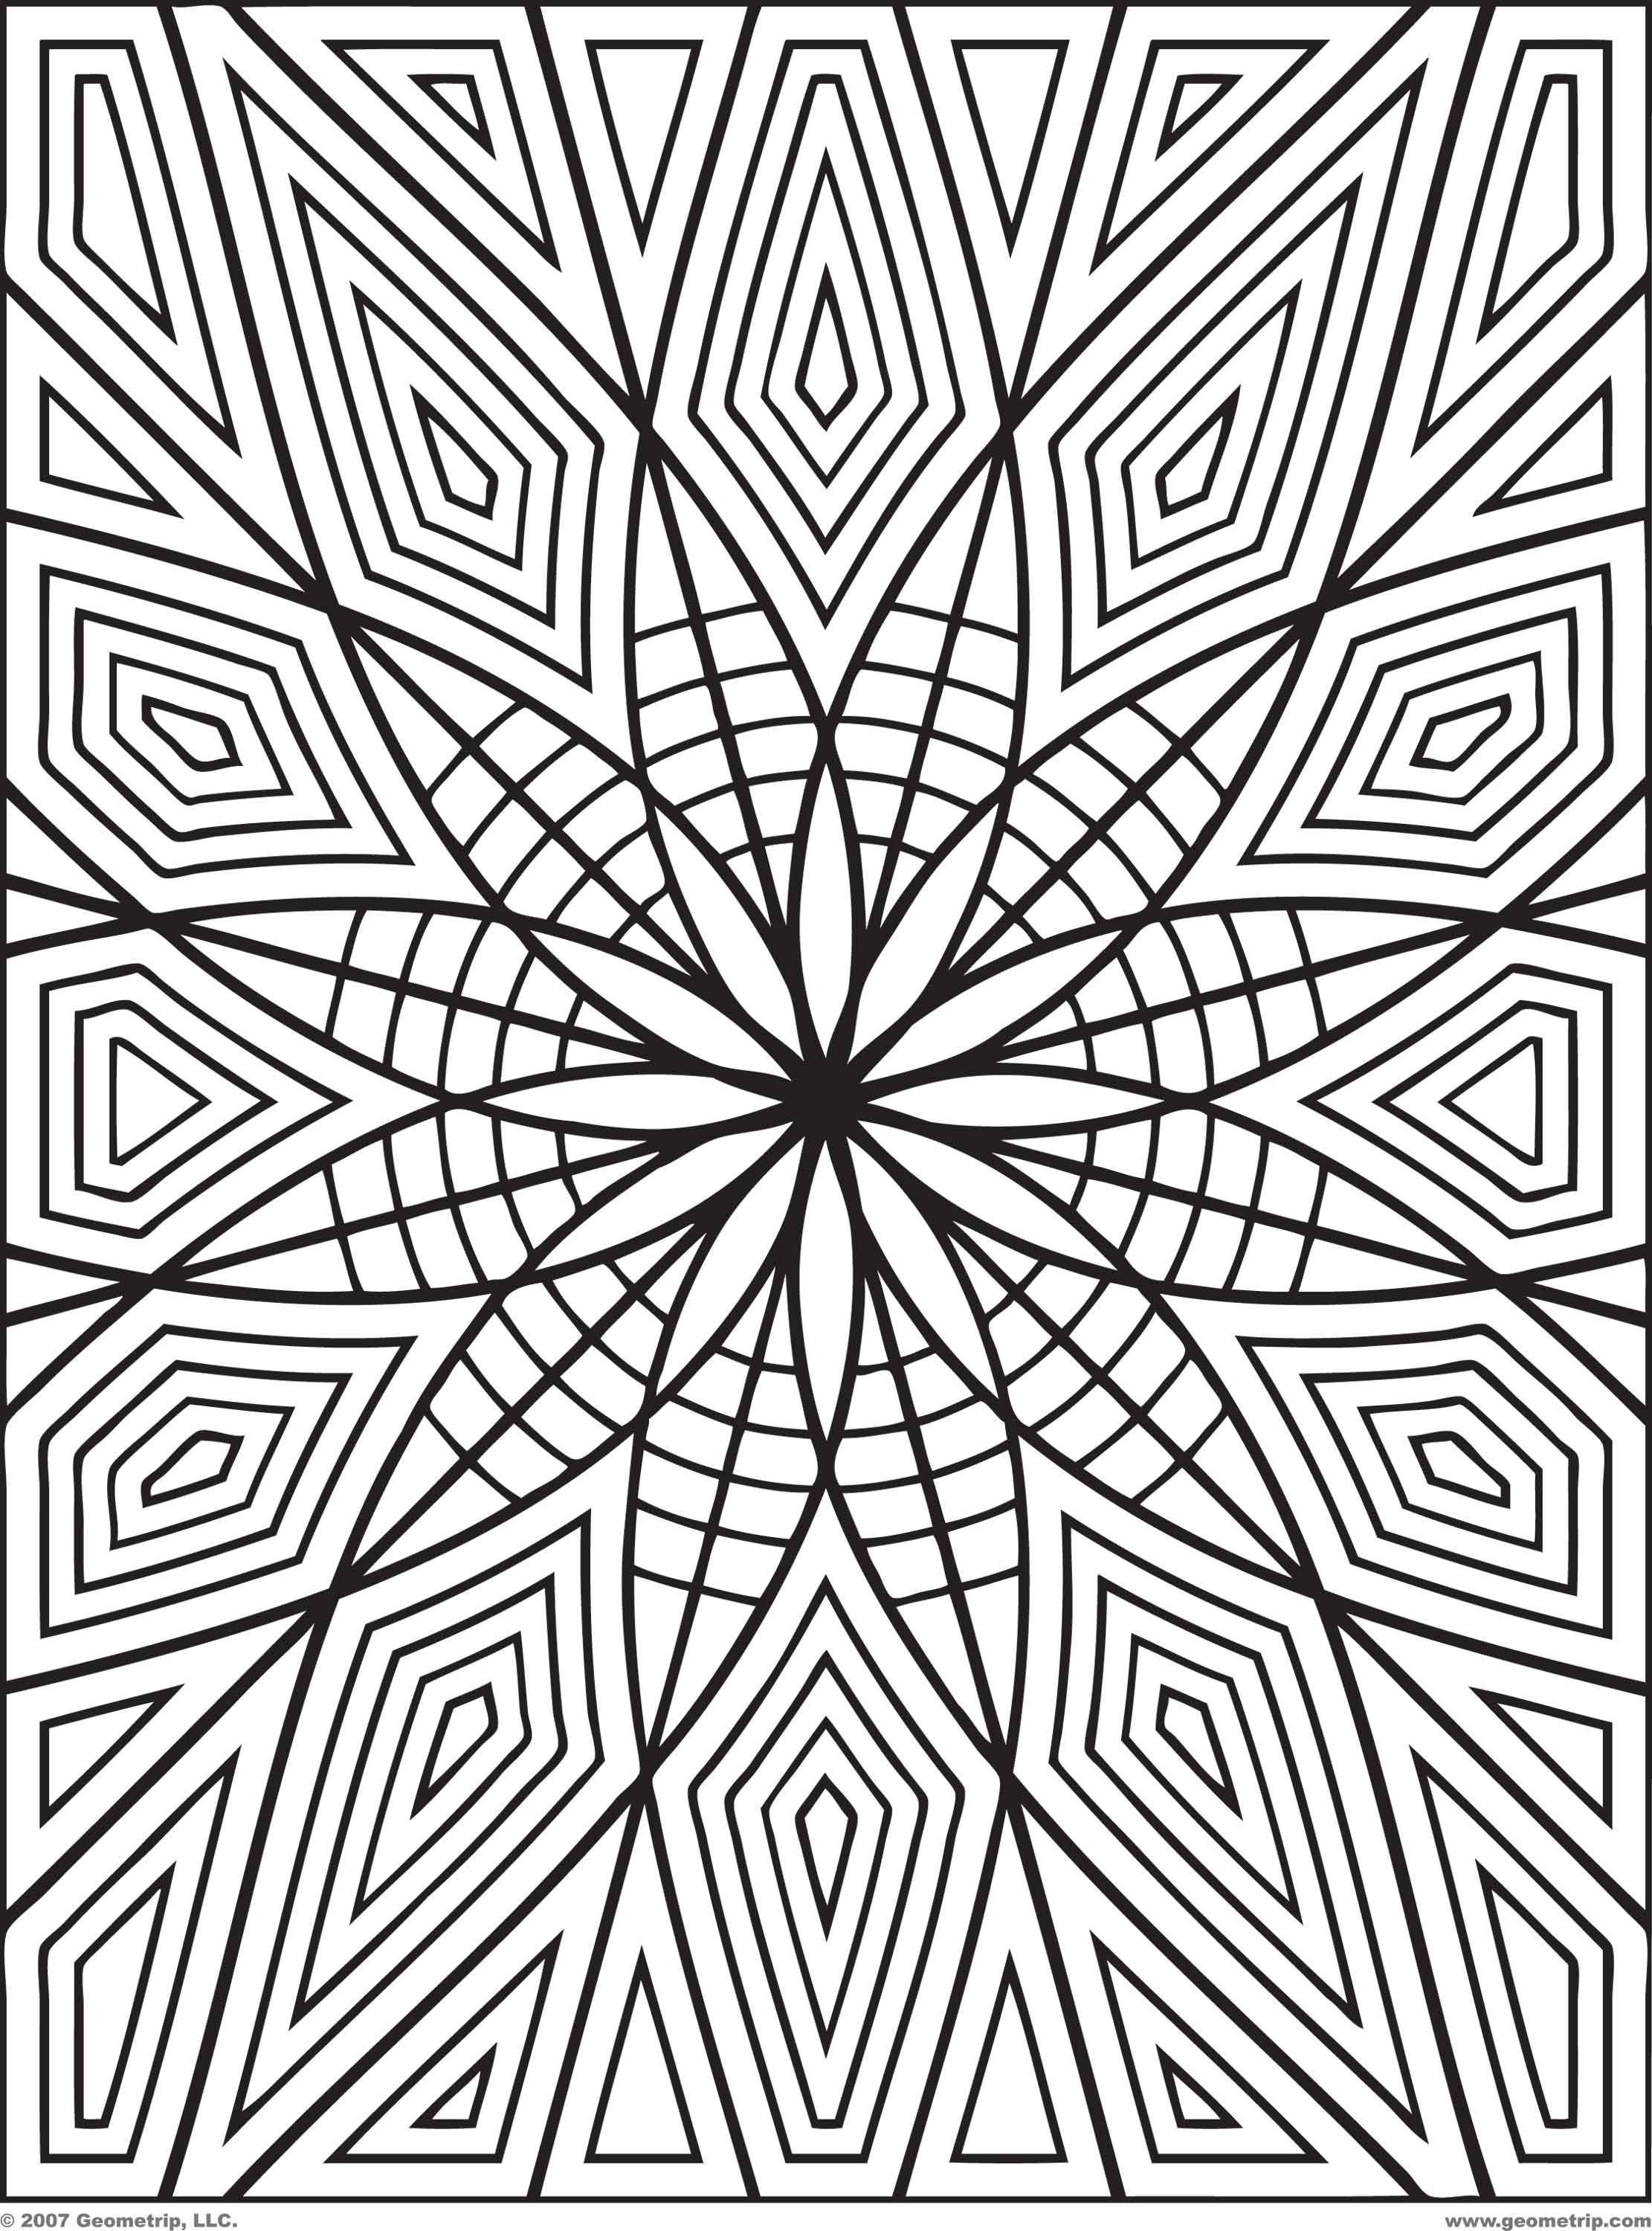 geometric design coloring pages geometric coloring pages pdf pic 1 hawaiidermatology com 470 kb 2222 - Geometric Coloring Pages